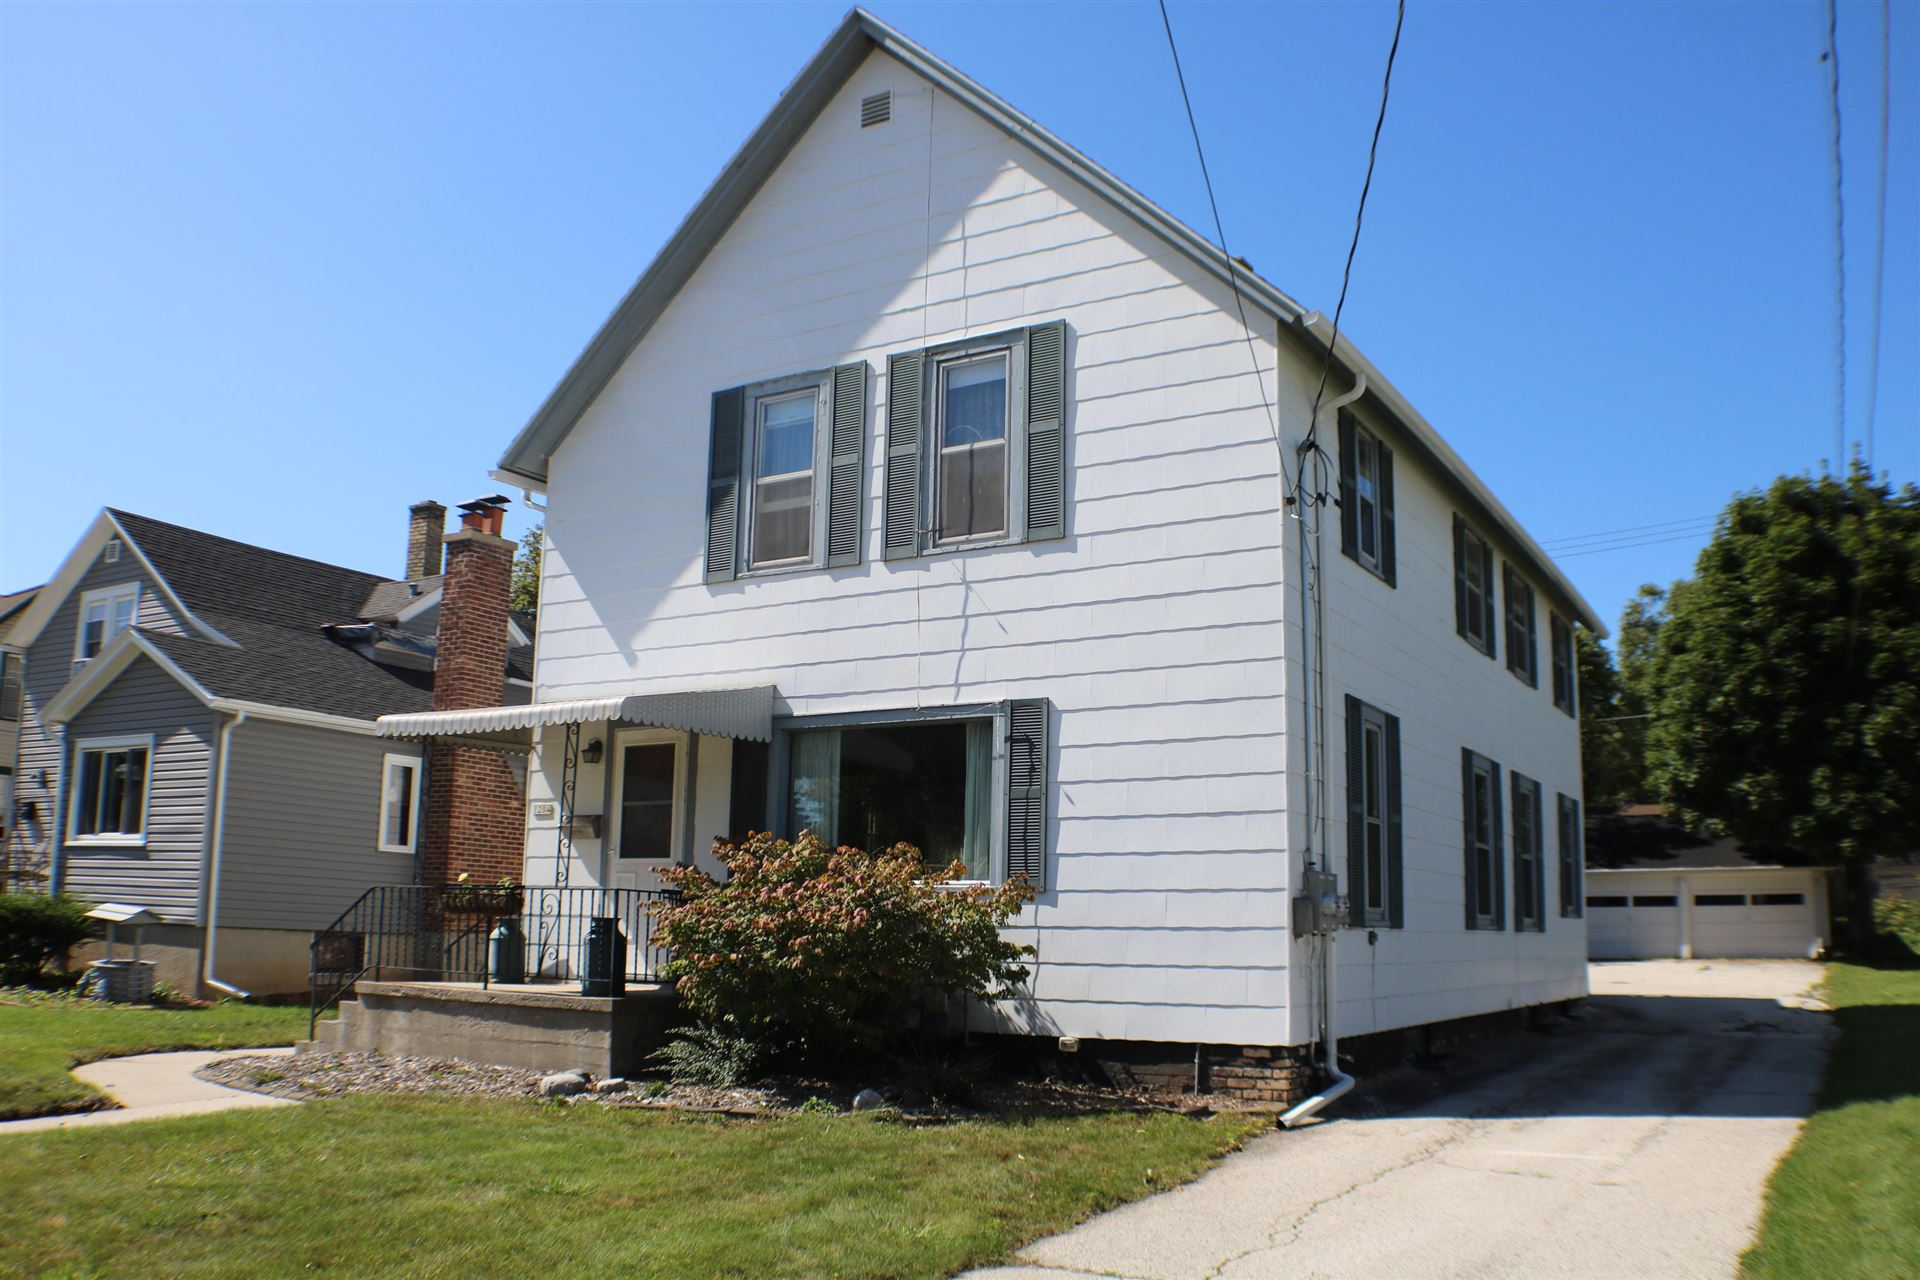 1204 N 8th St, Manitowoc, WI 54220 - #: 1659280